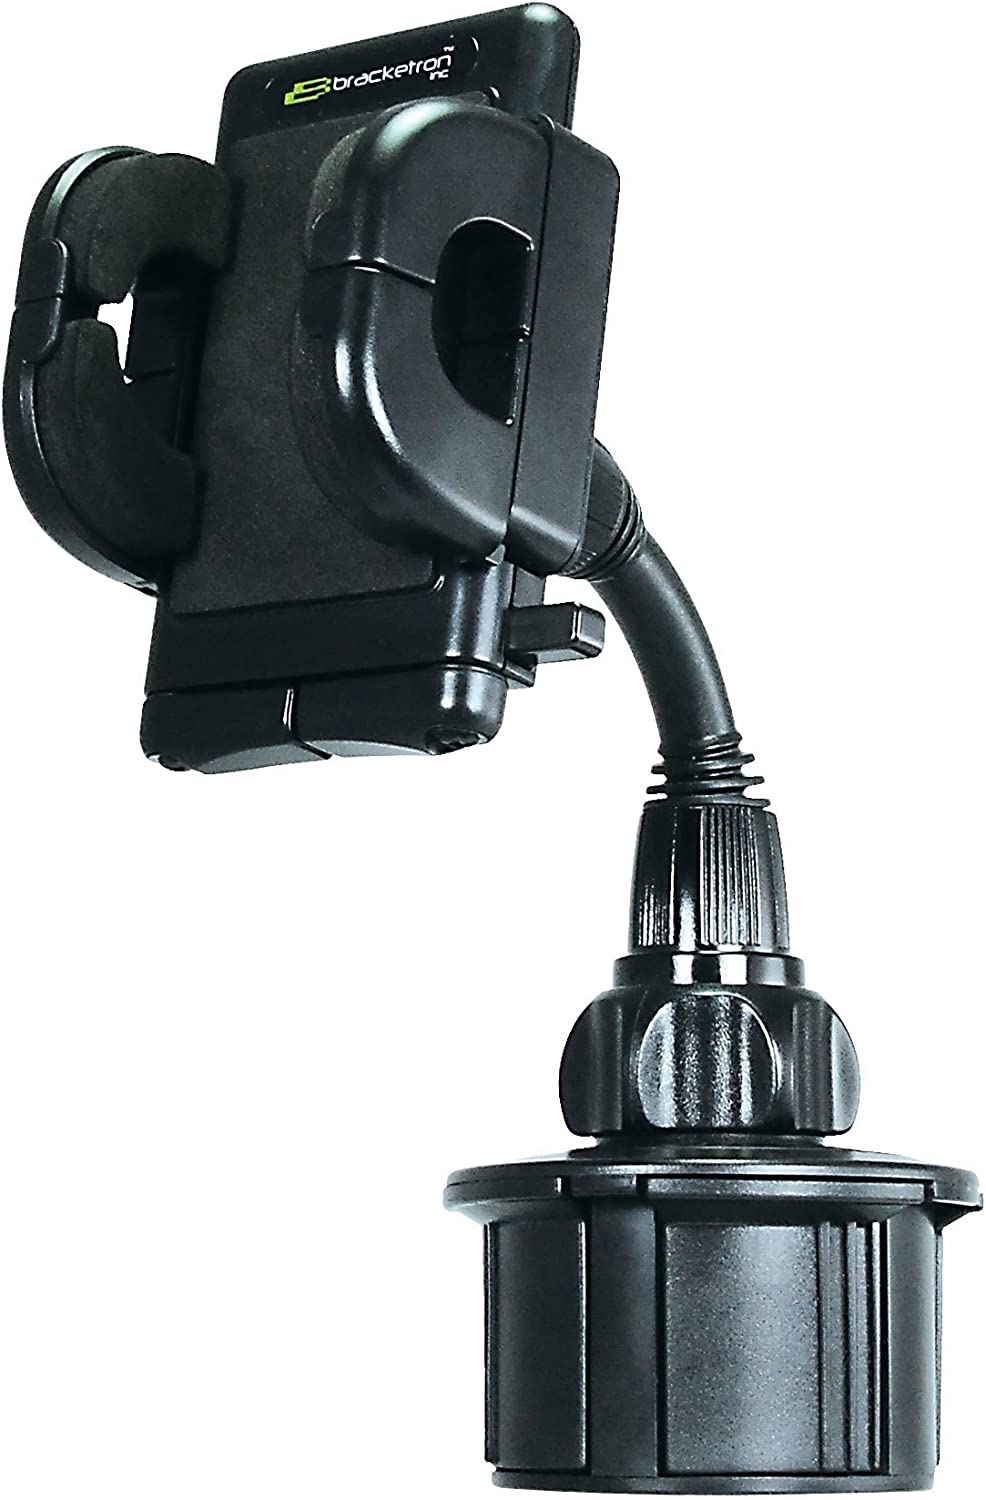 B002AQDXRY Bracketron Cup-iT Universal Golf Cart Cup Holder Mount with Grip-iT 71TZ9IysRxL.SL1500_